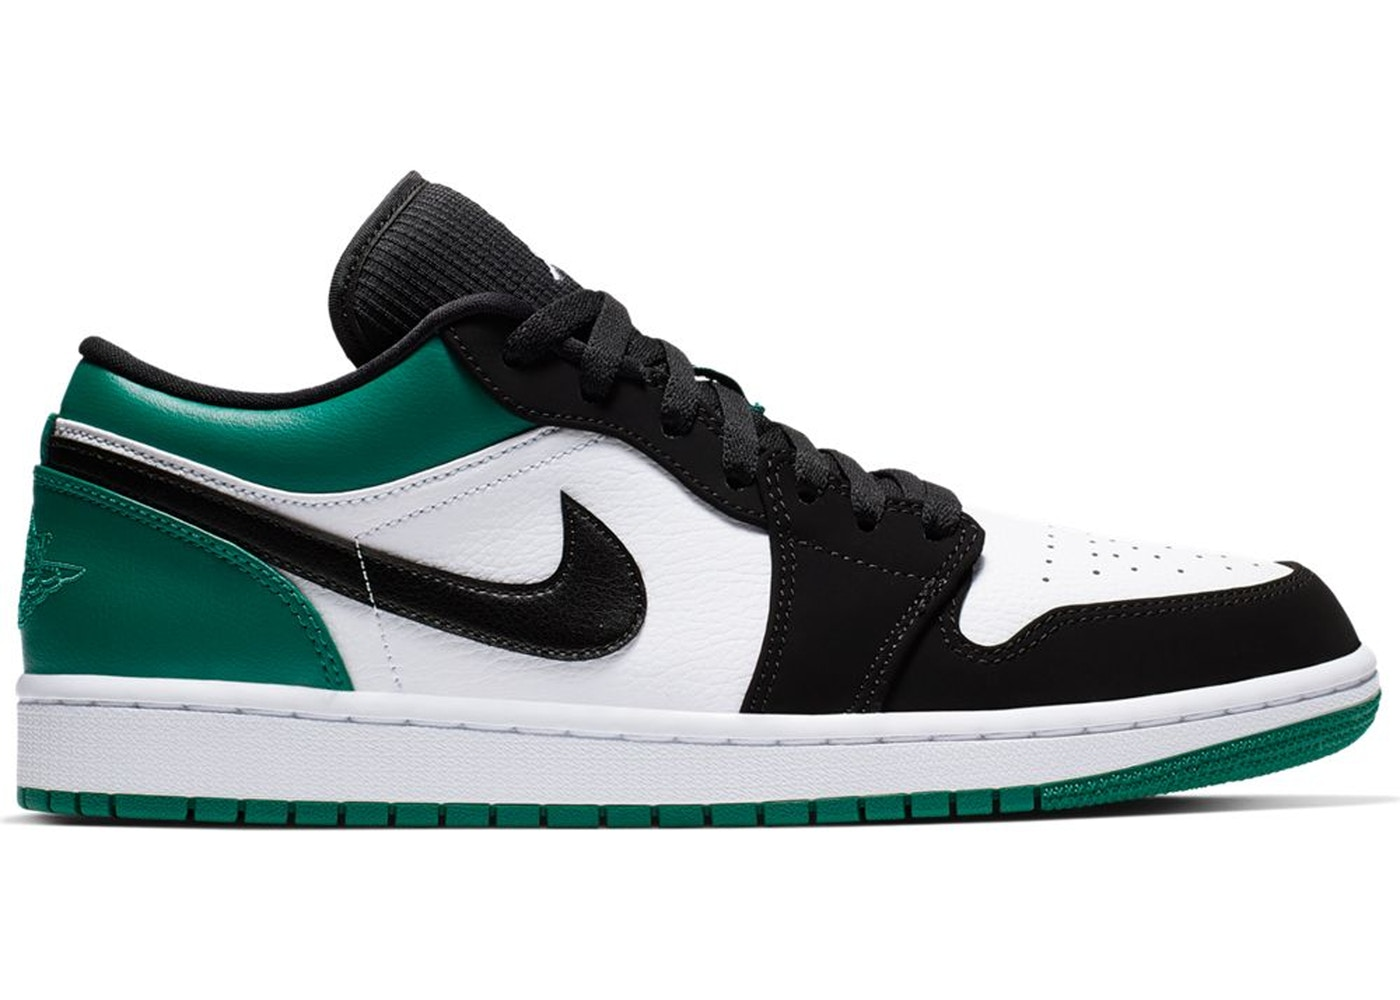 6b03512ef3a07b Jordan 1 Low White Black Mystic Green - 553558-113